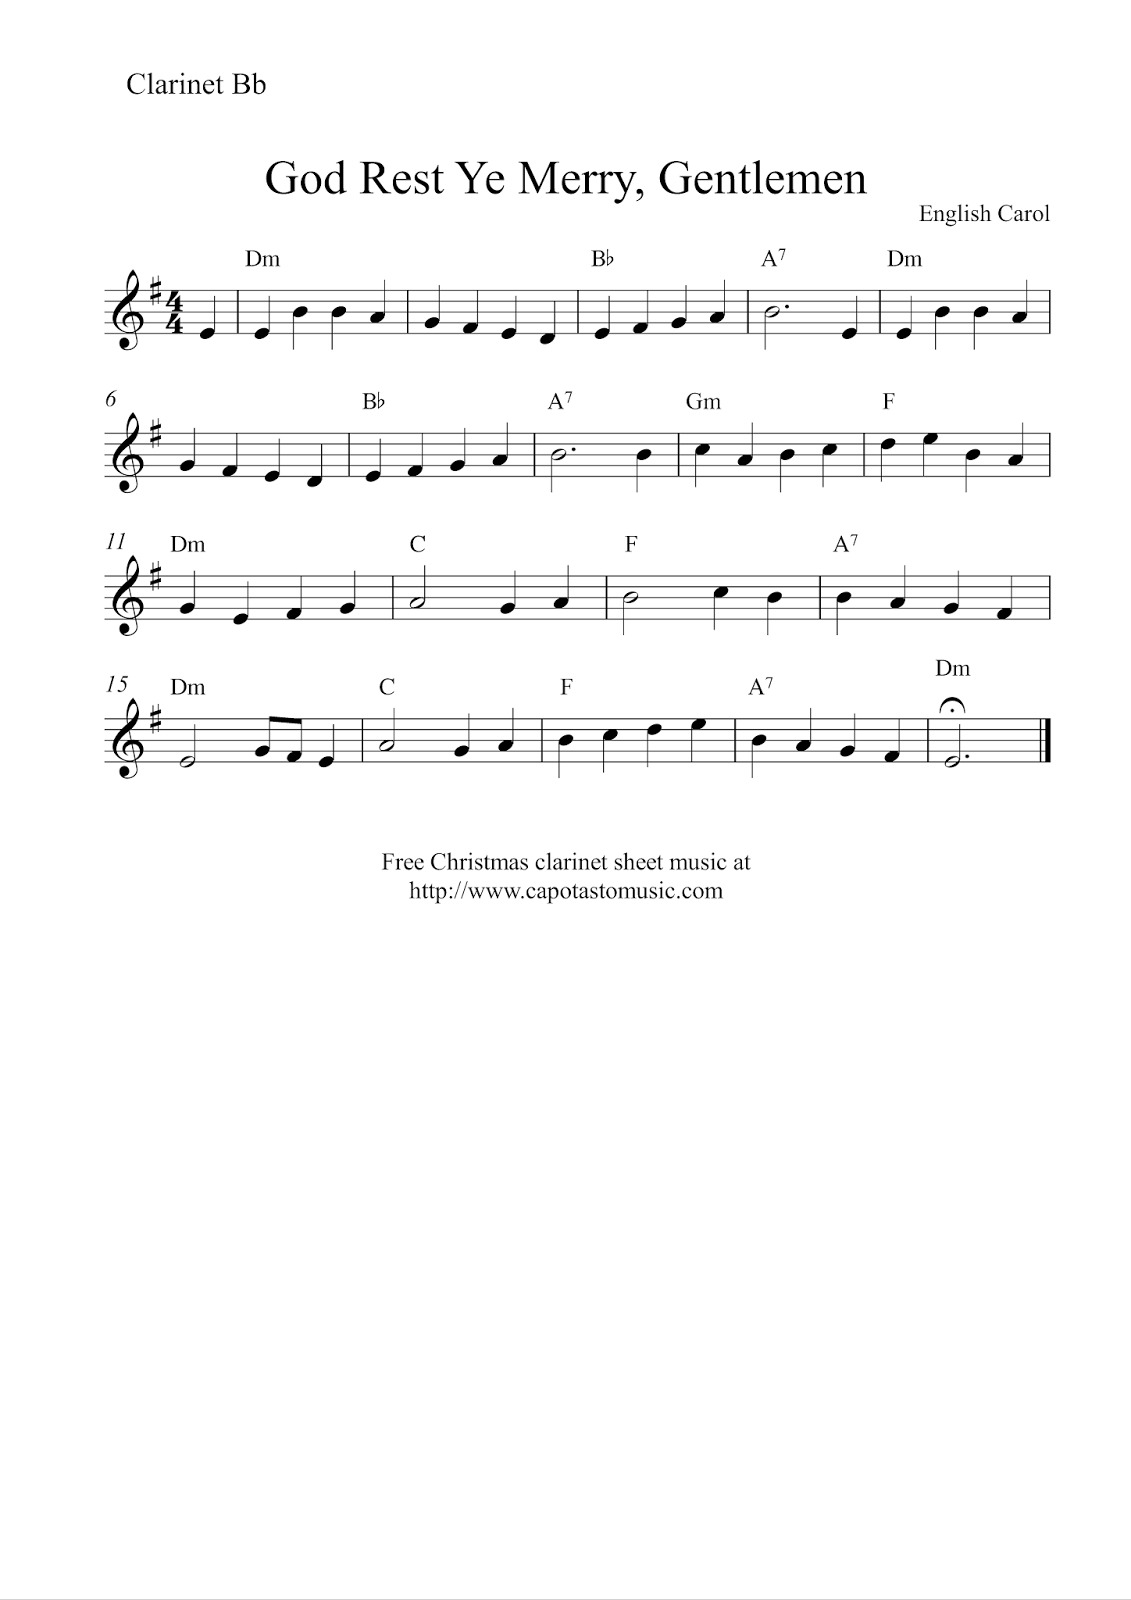 Free Christmas Clarinet Sheet Music - God Rest Ye Merry, Gentlemen - Free Printable Christmas Sheet Music For Clarinet